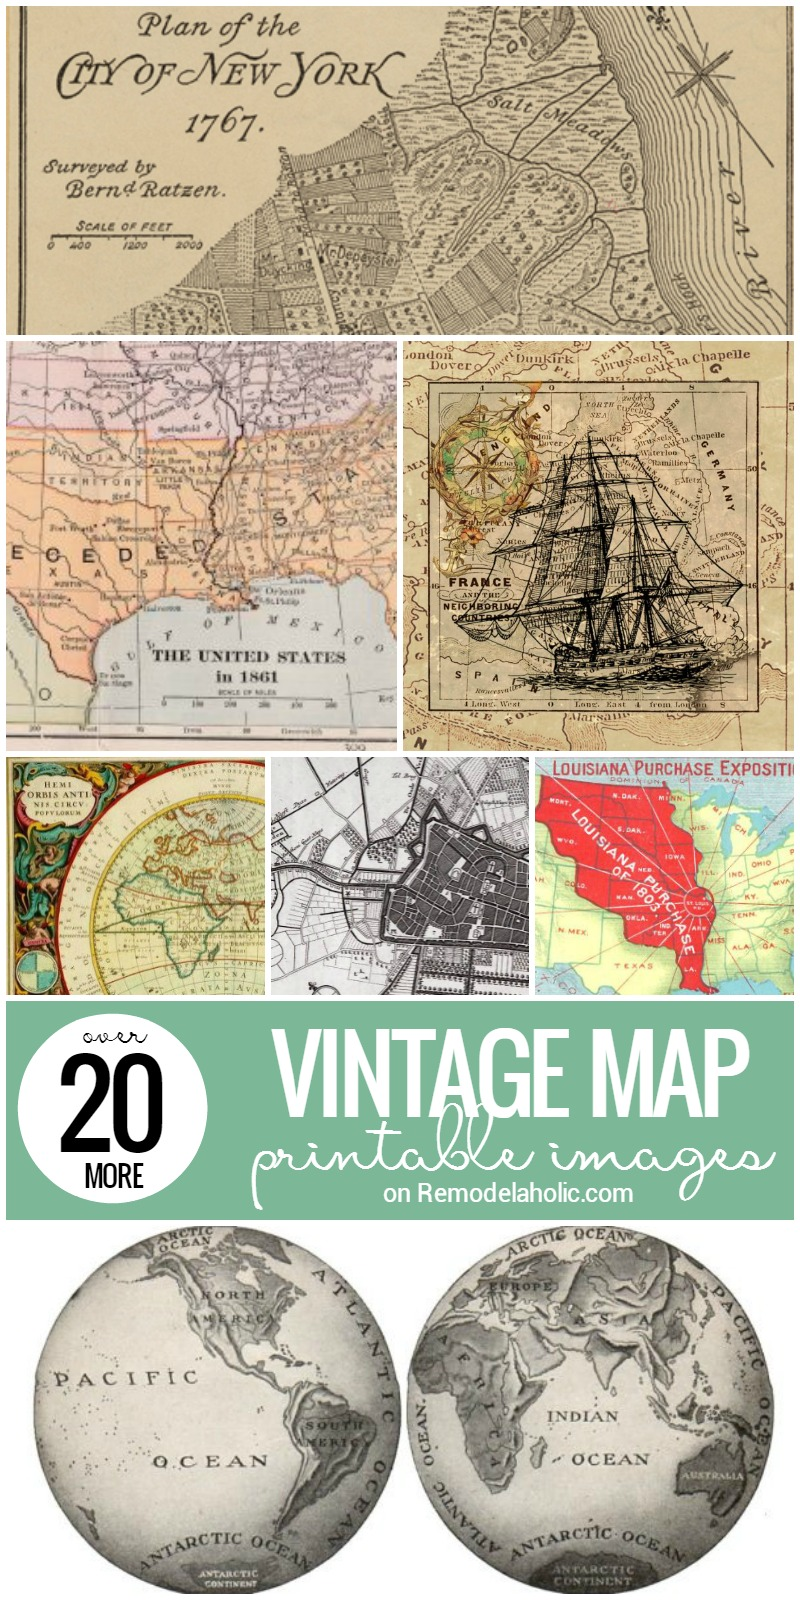 photo about Printable Vintage Maps called Remodelaholic 20+ Further more Totally free Printable Basic Map Illustrations or photos